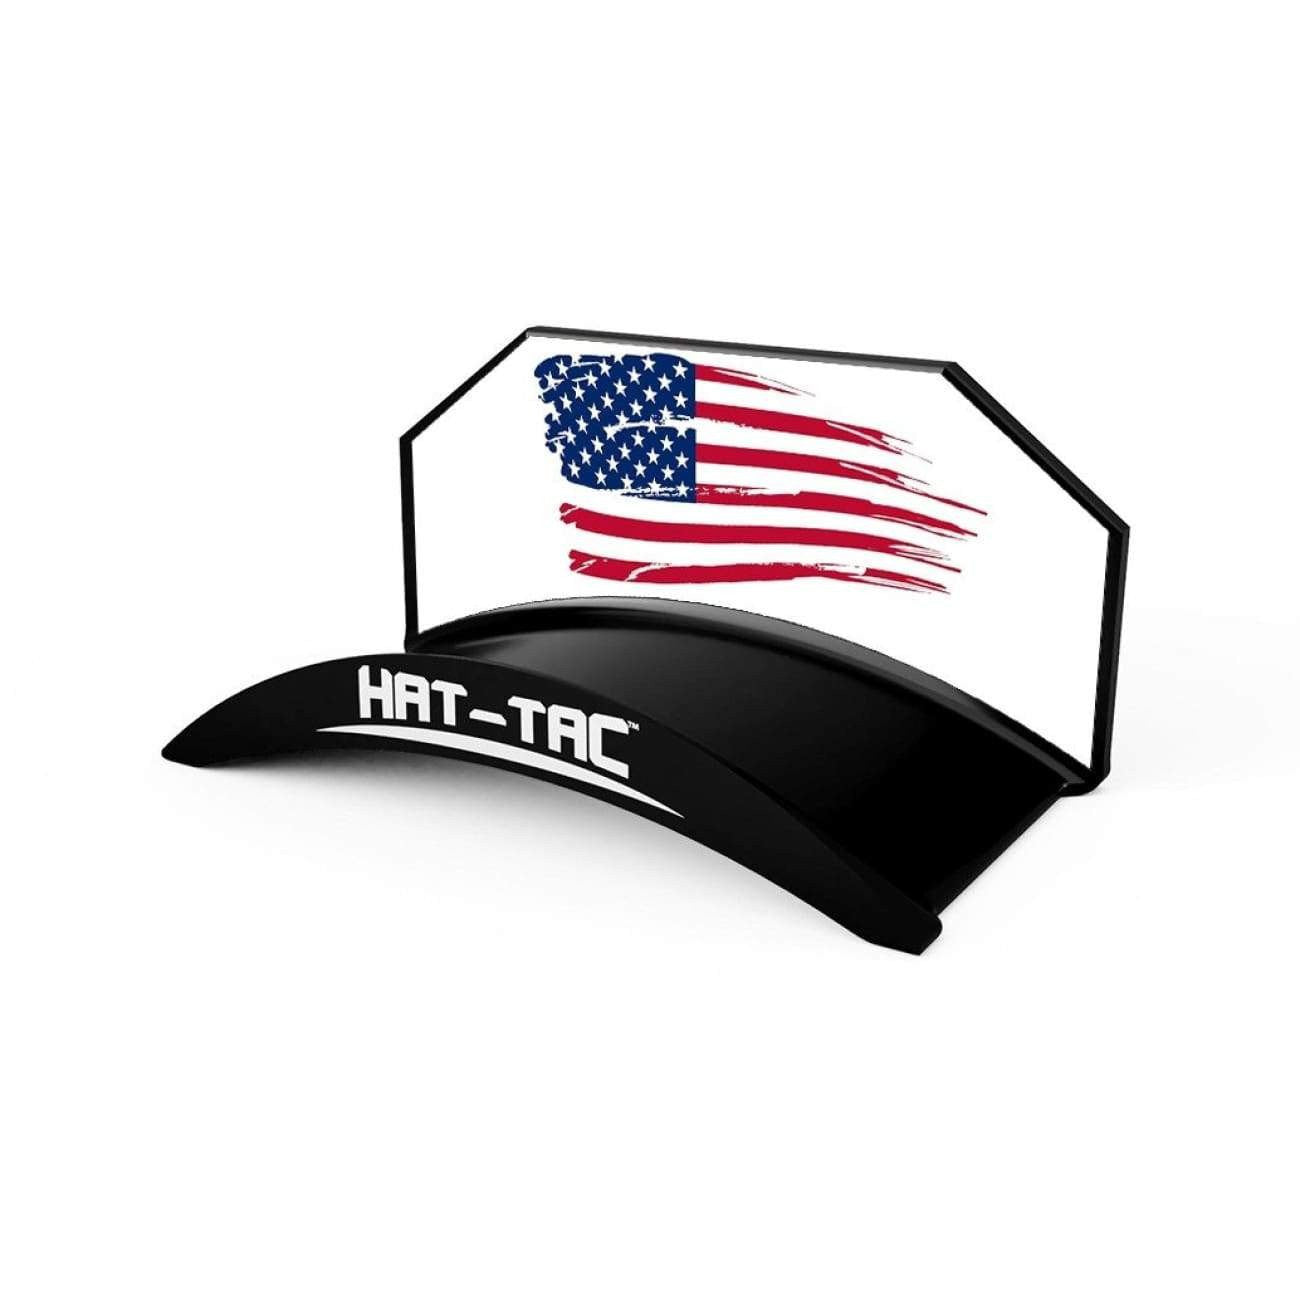 American Collection  Individual / Freedom hat-tac.myshopify.com